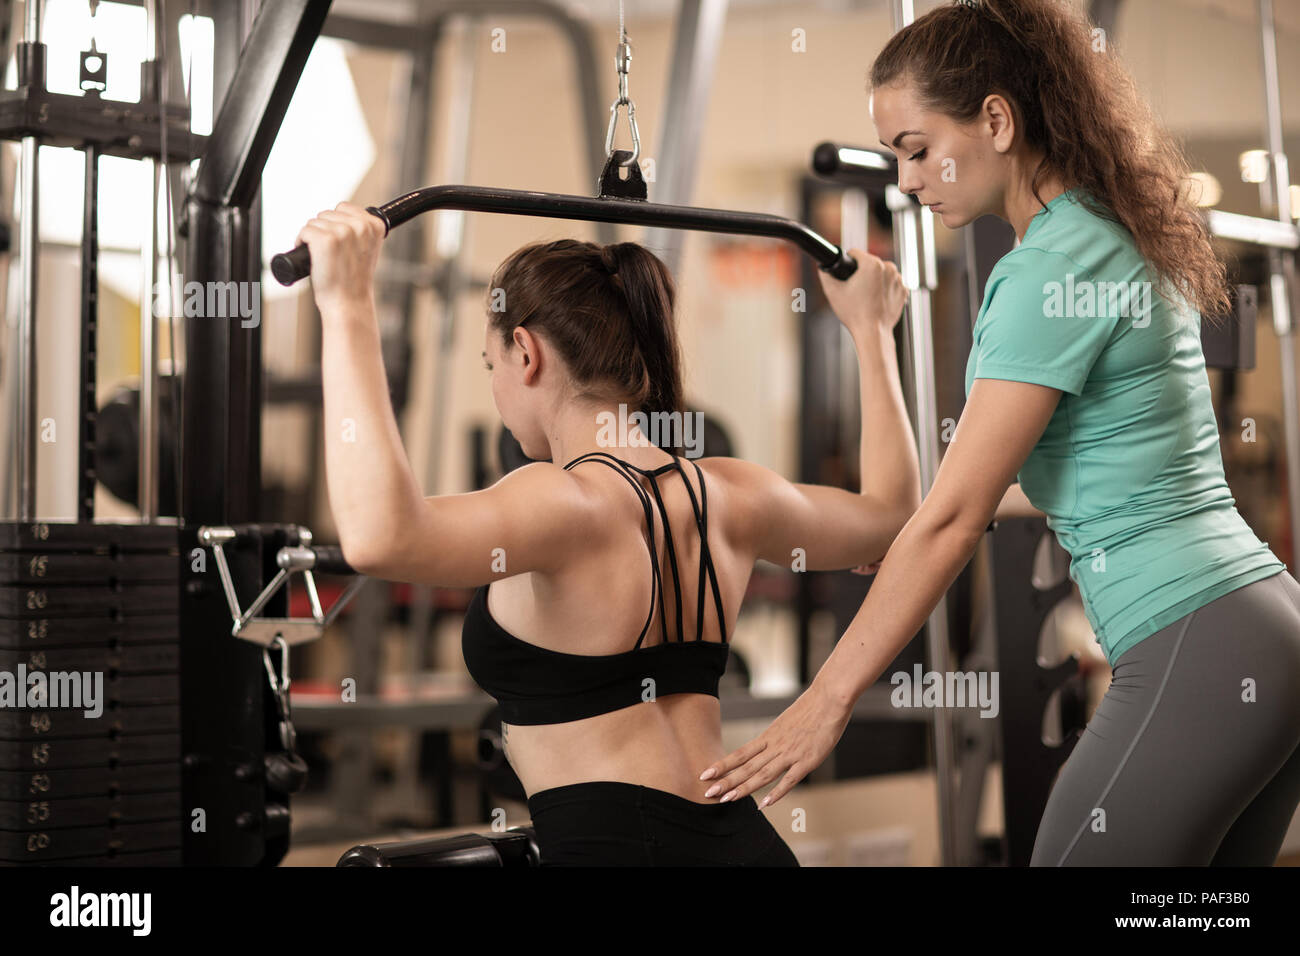 Personal trainer helping girl making excercise in gym - Stock Image